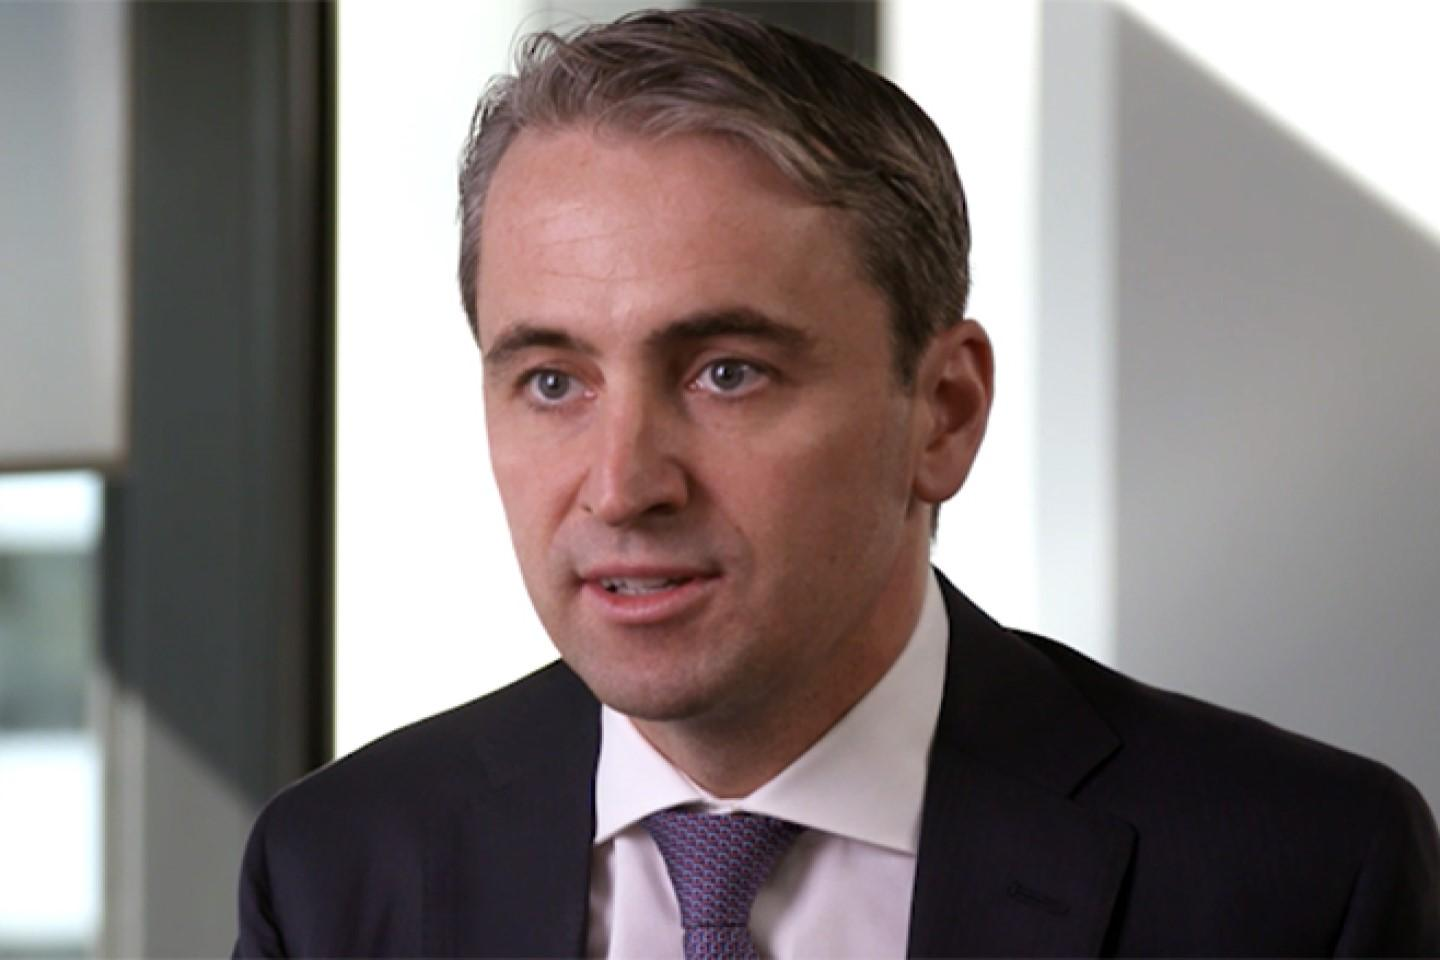 CBA boss expects rules for pay later firms